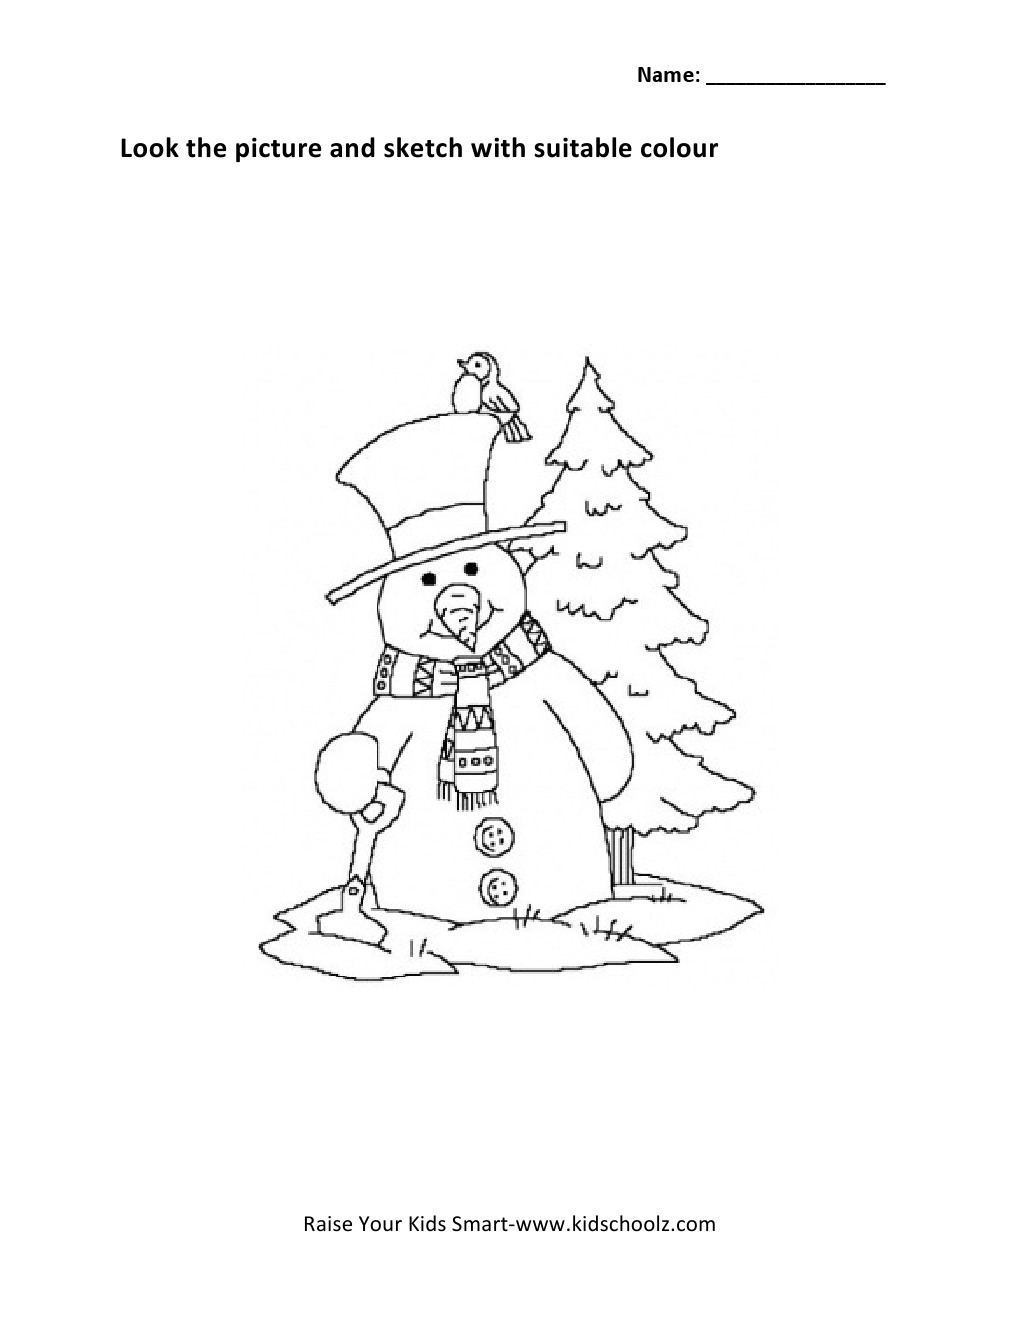 Colouring sheets for lkg - Colouring Worksheets For Lkg Christmas Colouring Worksheet Kidschoolzkidschoolz